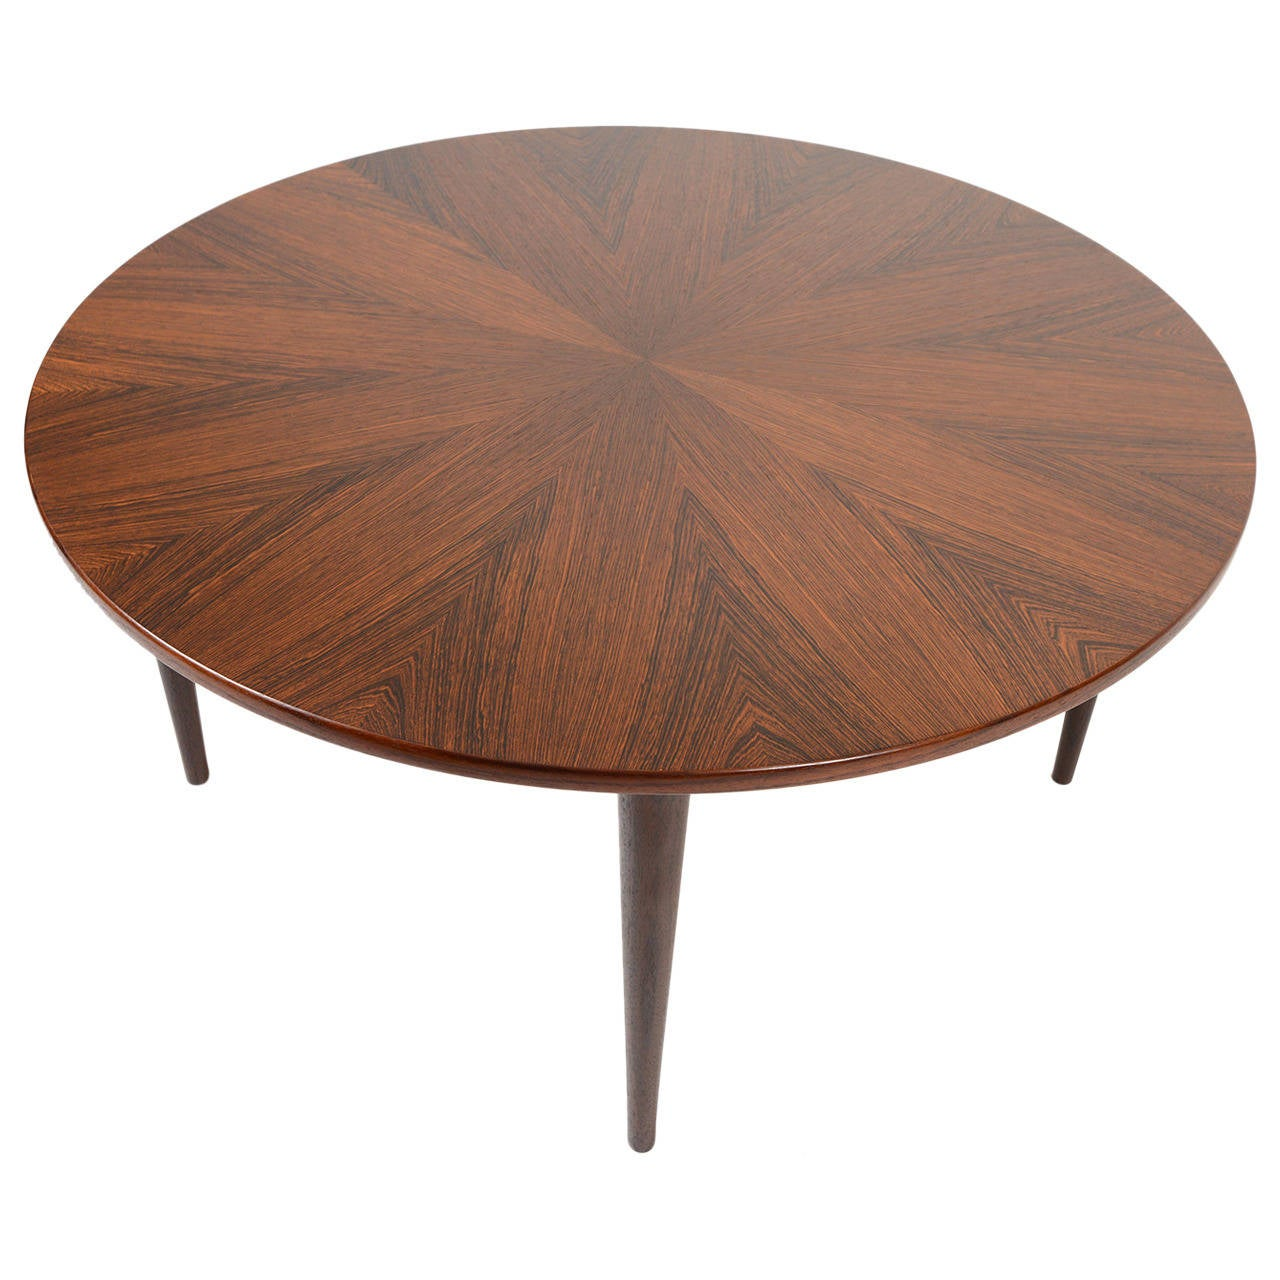 Danish modern round starburst brazilian rosewood coffee table at 1stdibs Round coffee table modern